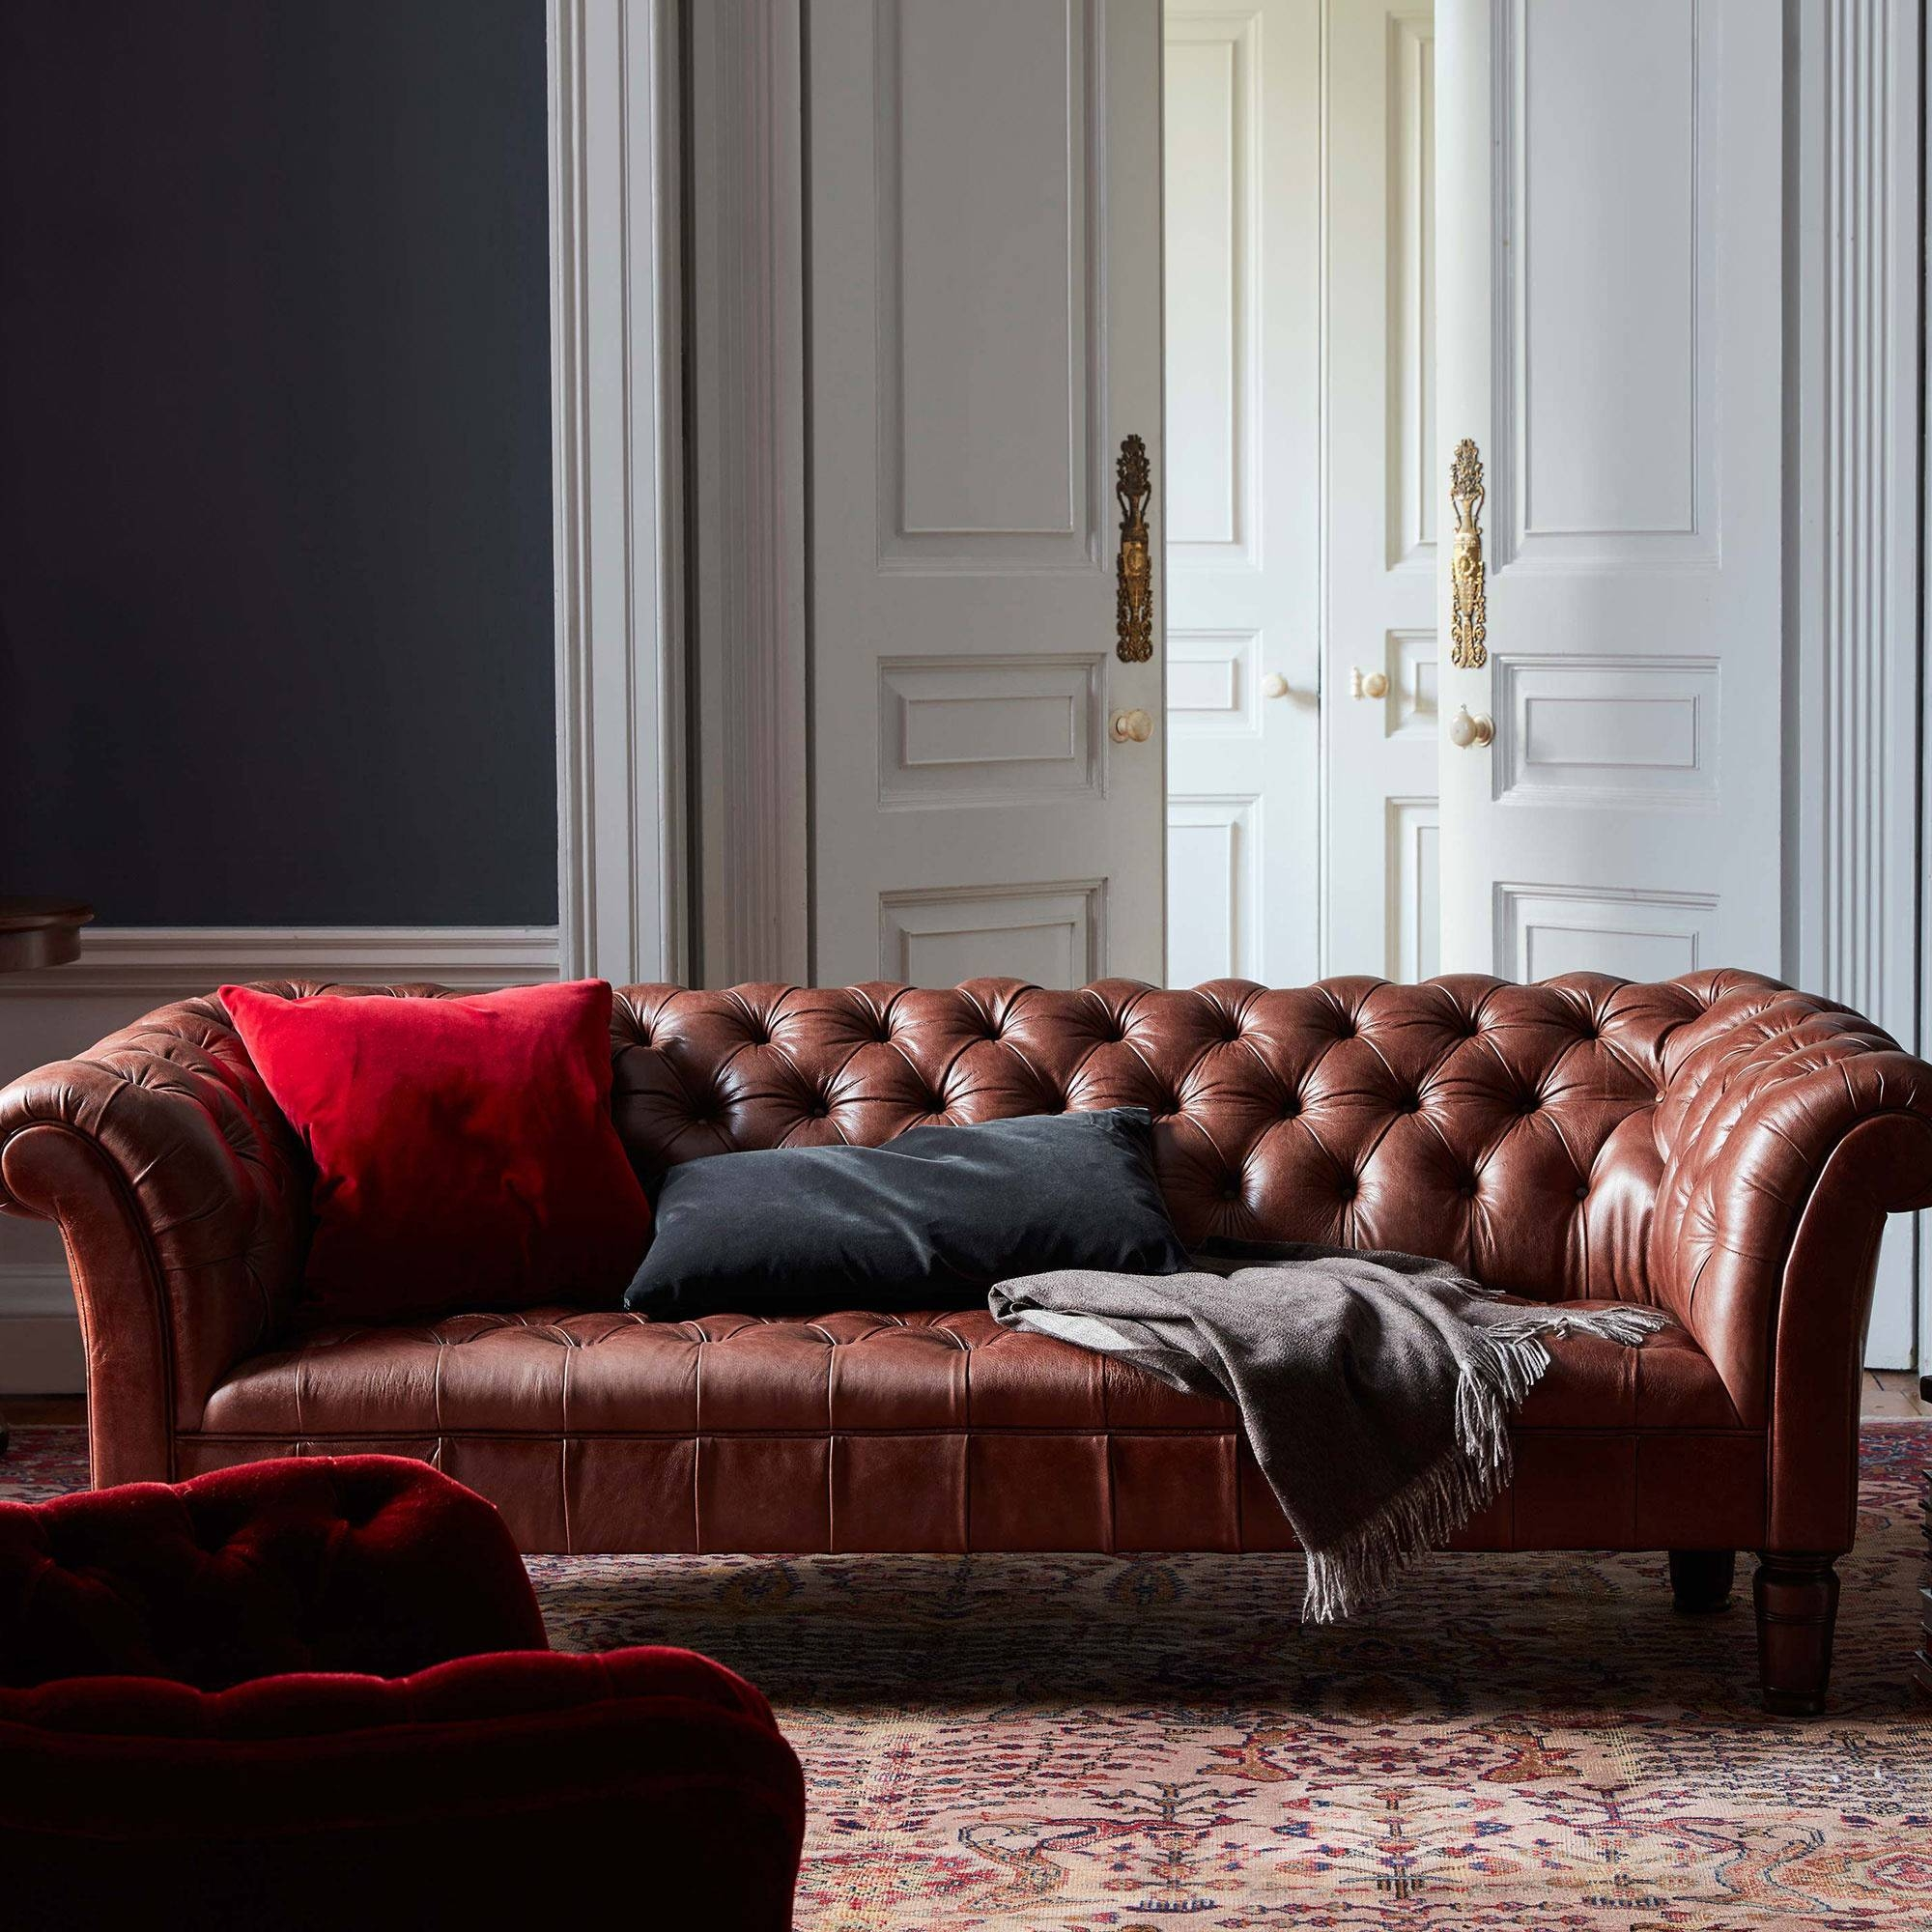 Chesterfield Sofa, Chestnut Leather | Soho Home regarding Red Leather Chesterfield Chairs (Image 4 of 15)